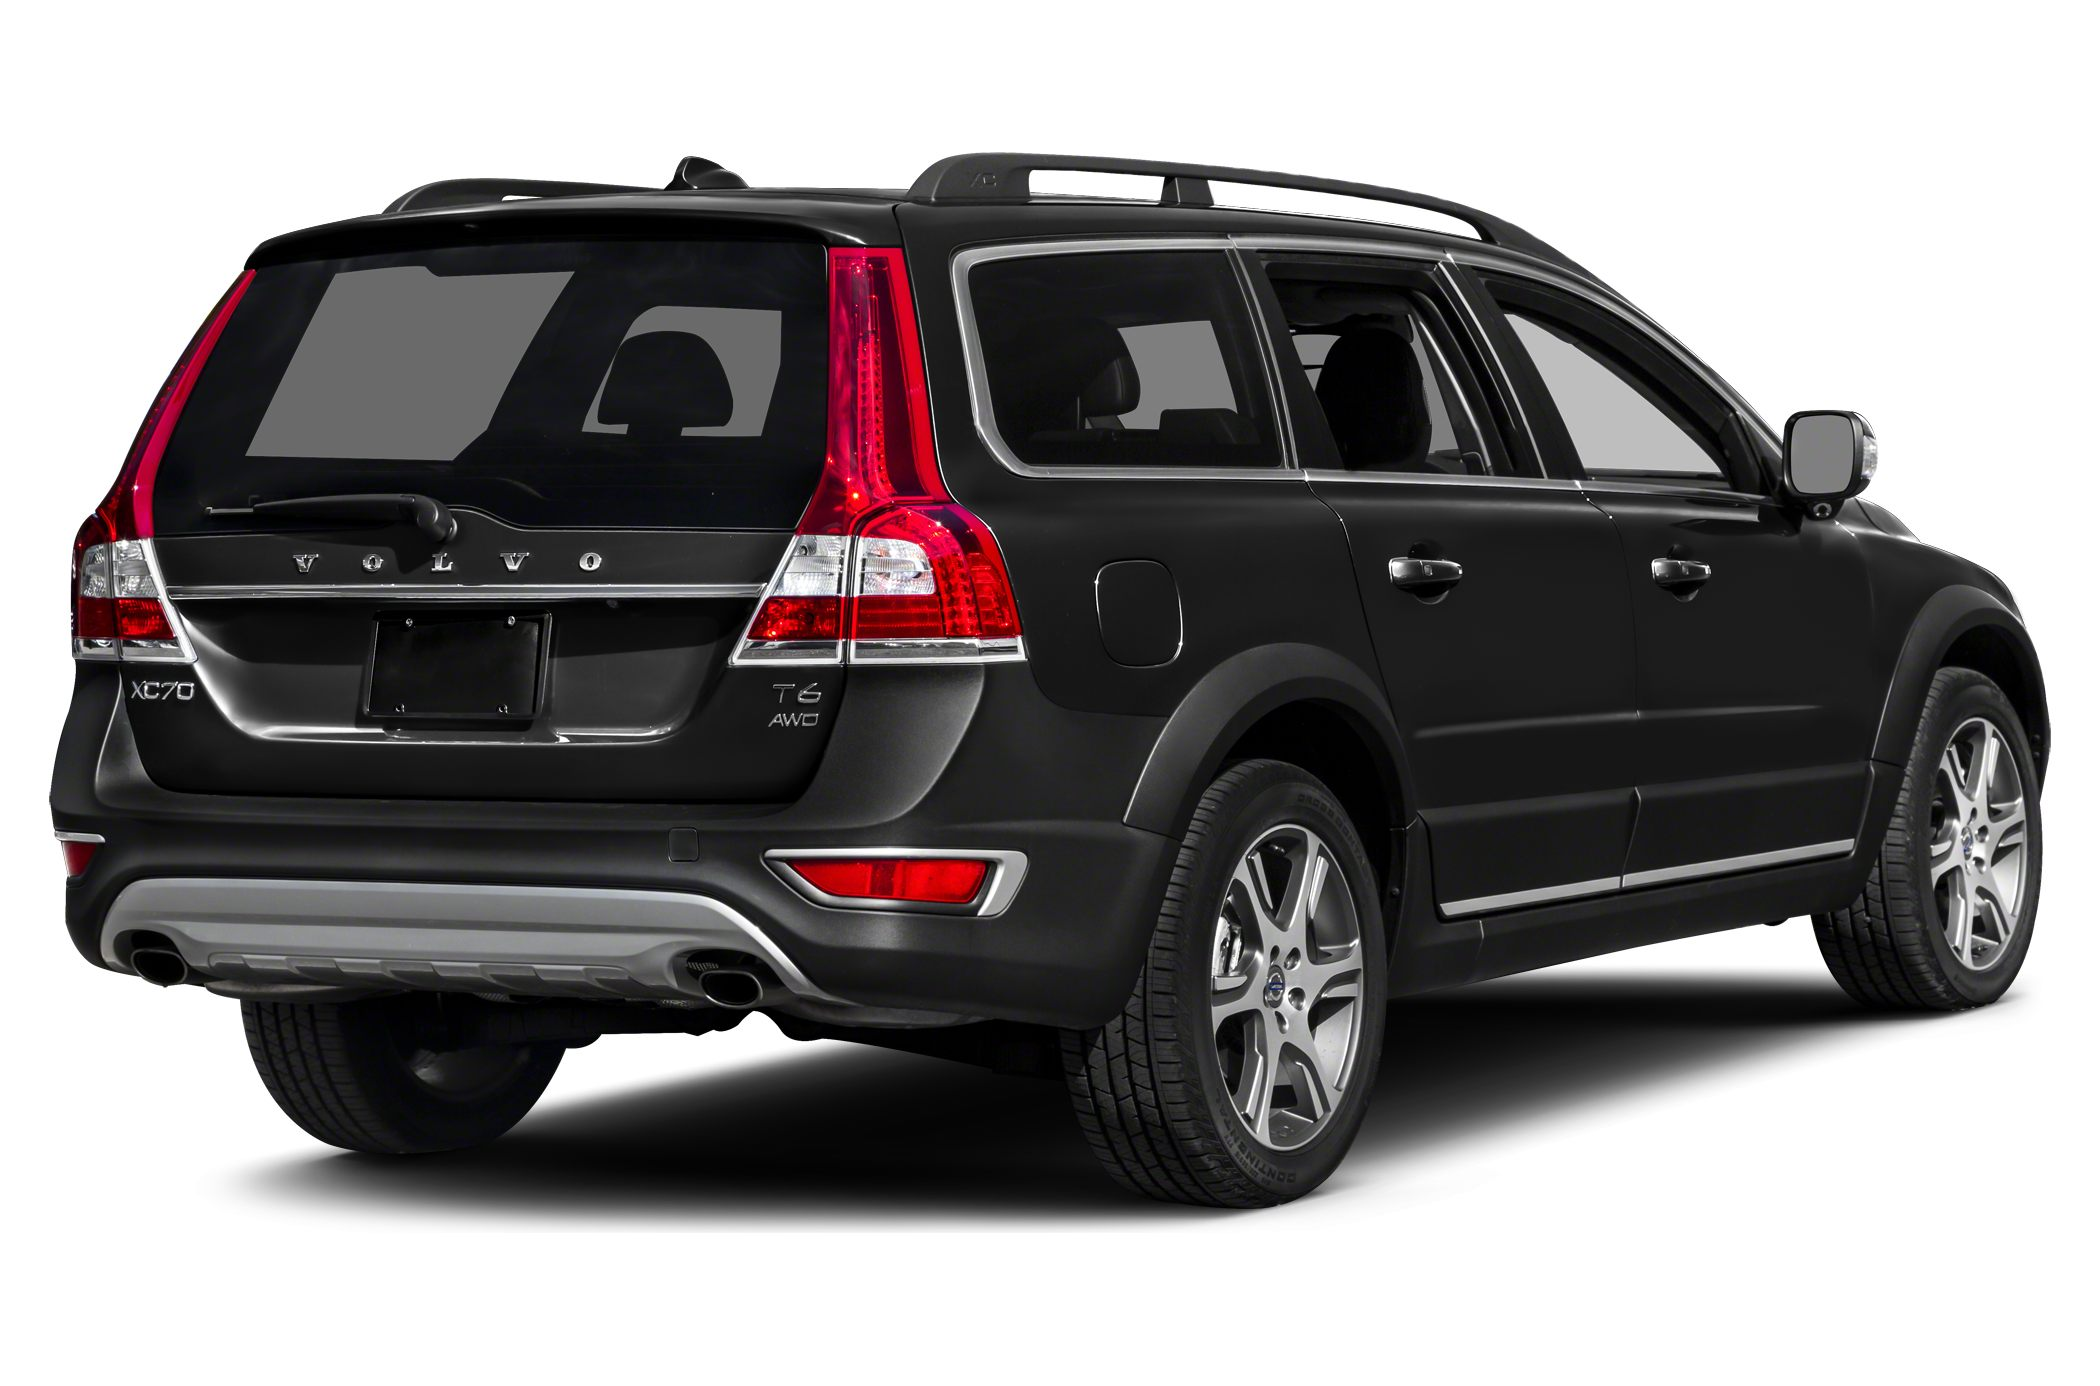 2015 5 volvo xc70 t6 platinum 4dr all wheel drive wagon pictures. Black Bedroom Furniture Sets. Home Design Ideas